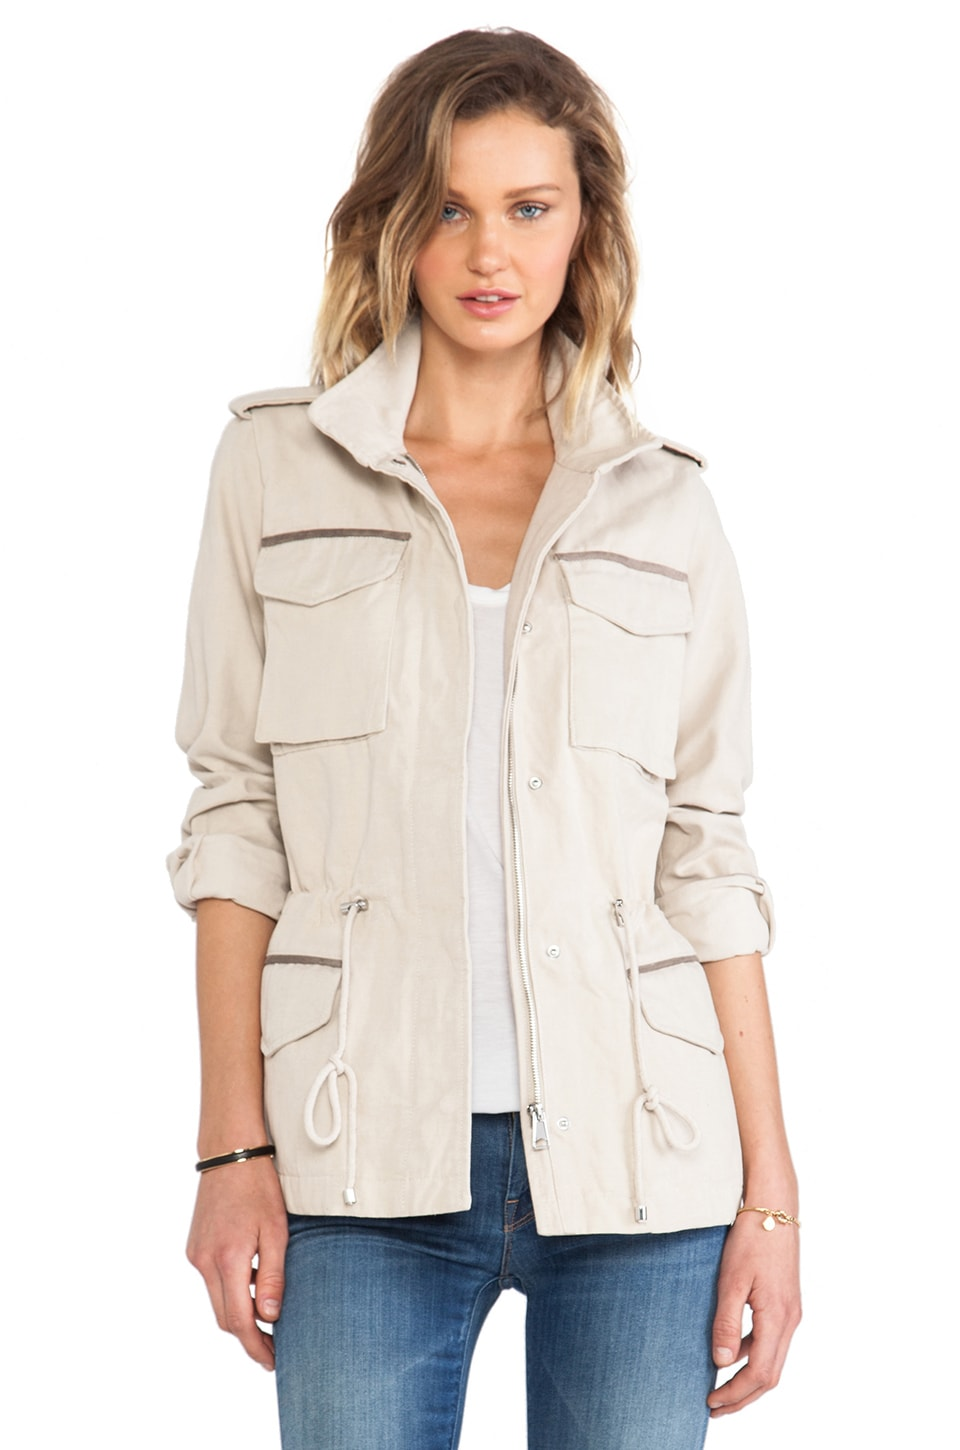 Soia & Kyo Britt Jacket in Oatmeal